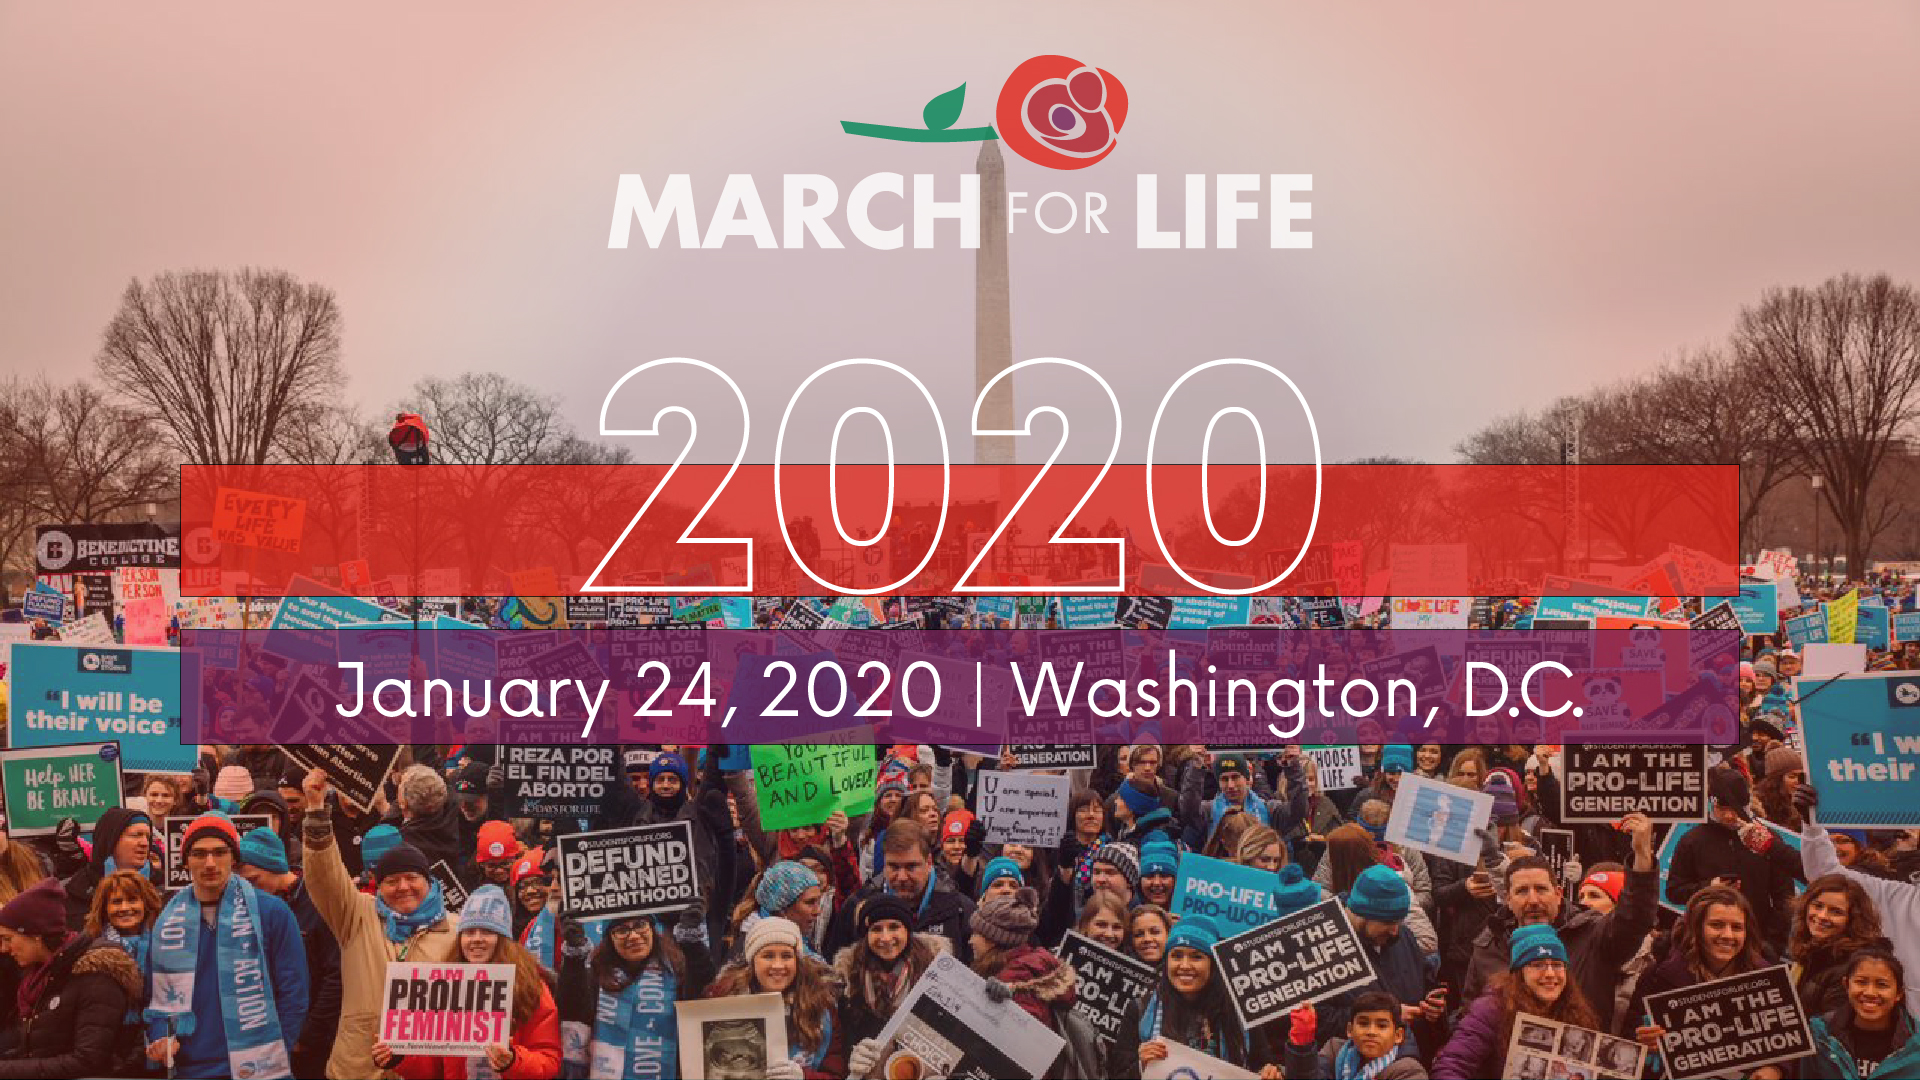 March for lie 2020